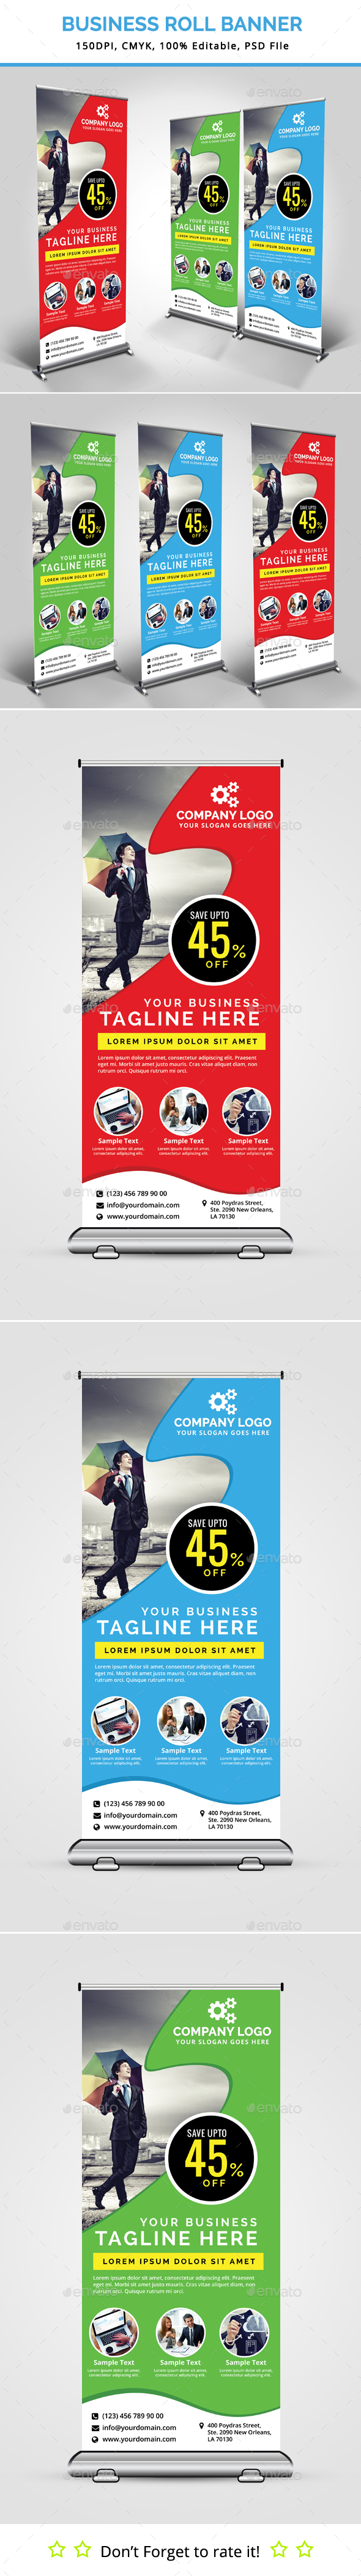 Business Roll Up Banner V16 - Signage Print Templates